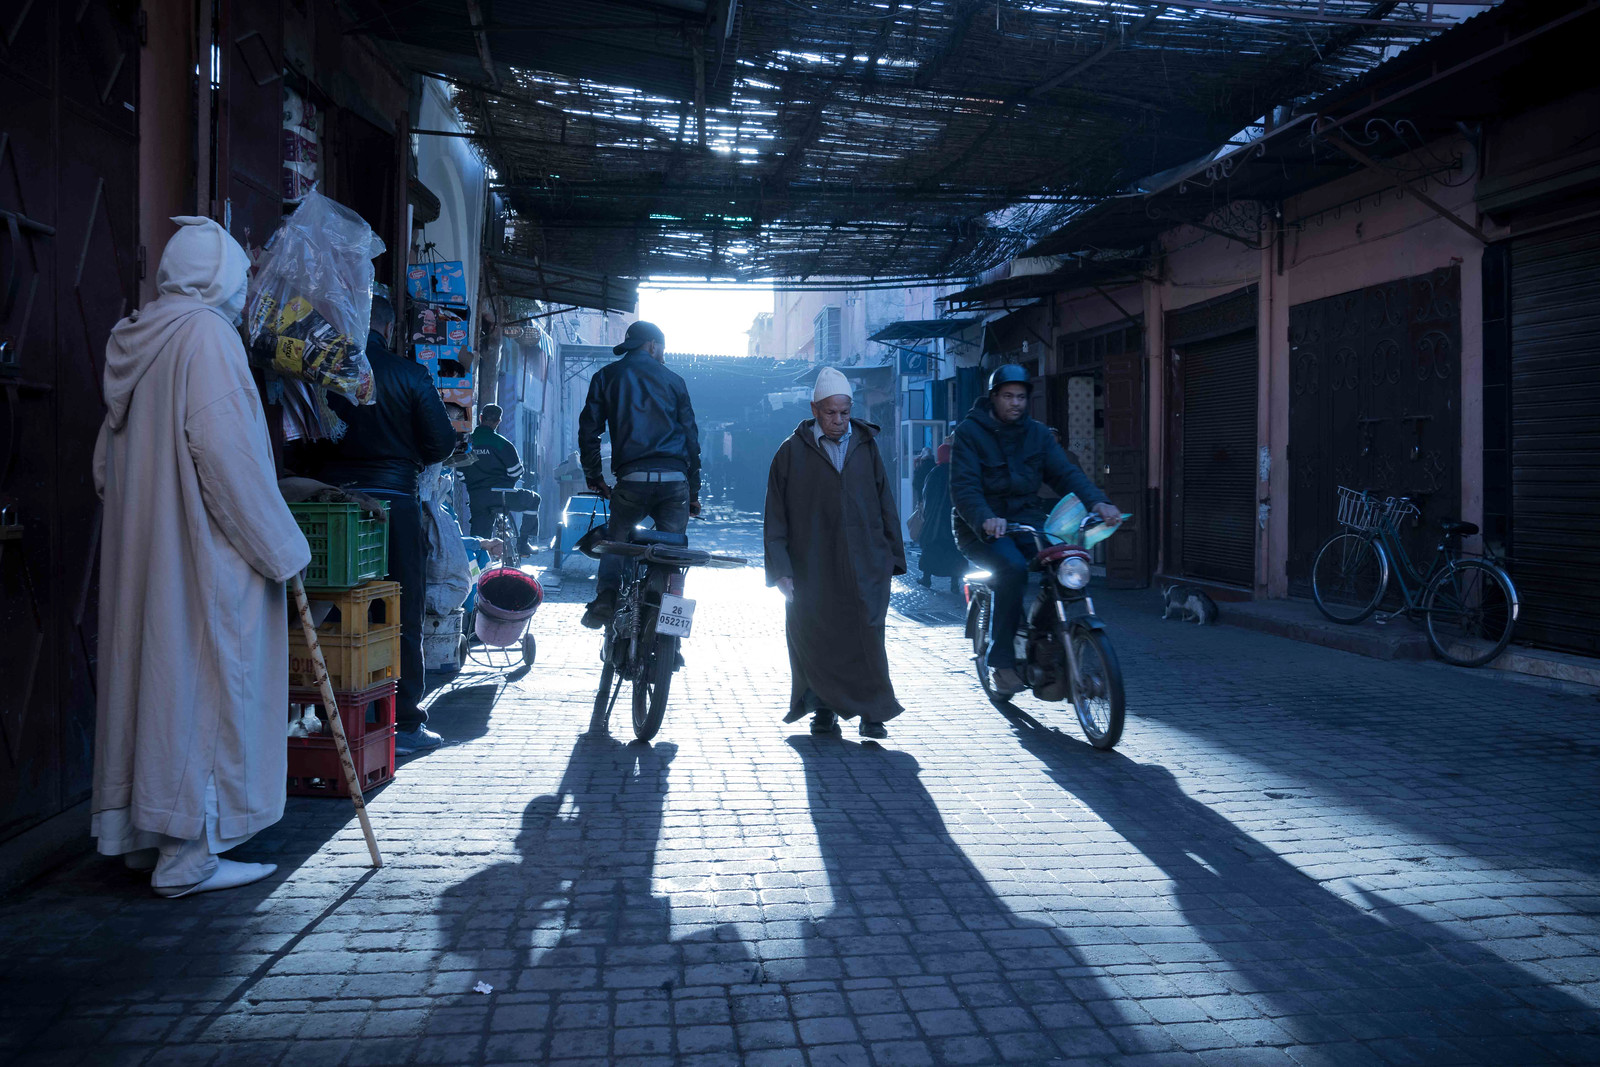 Medinas of Marrakech Morocco - cycling vacation and photography tour with Kevin Wenning